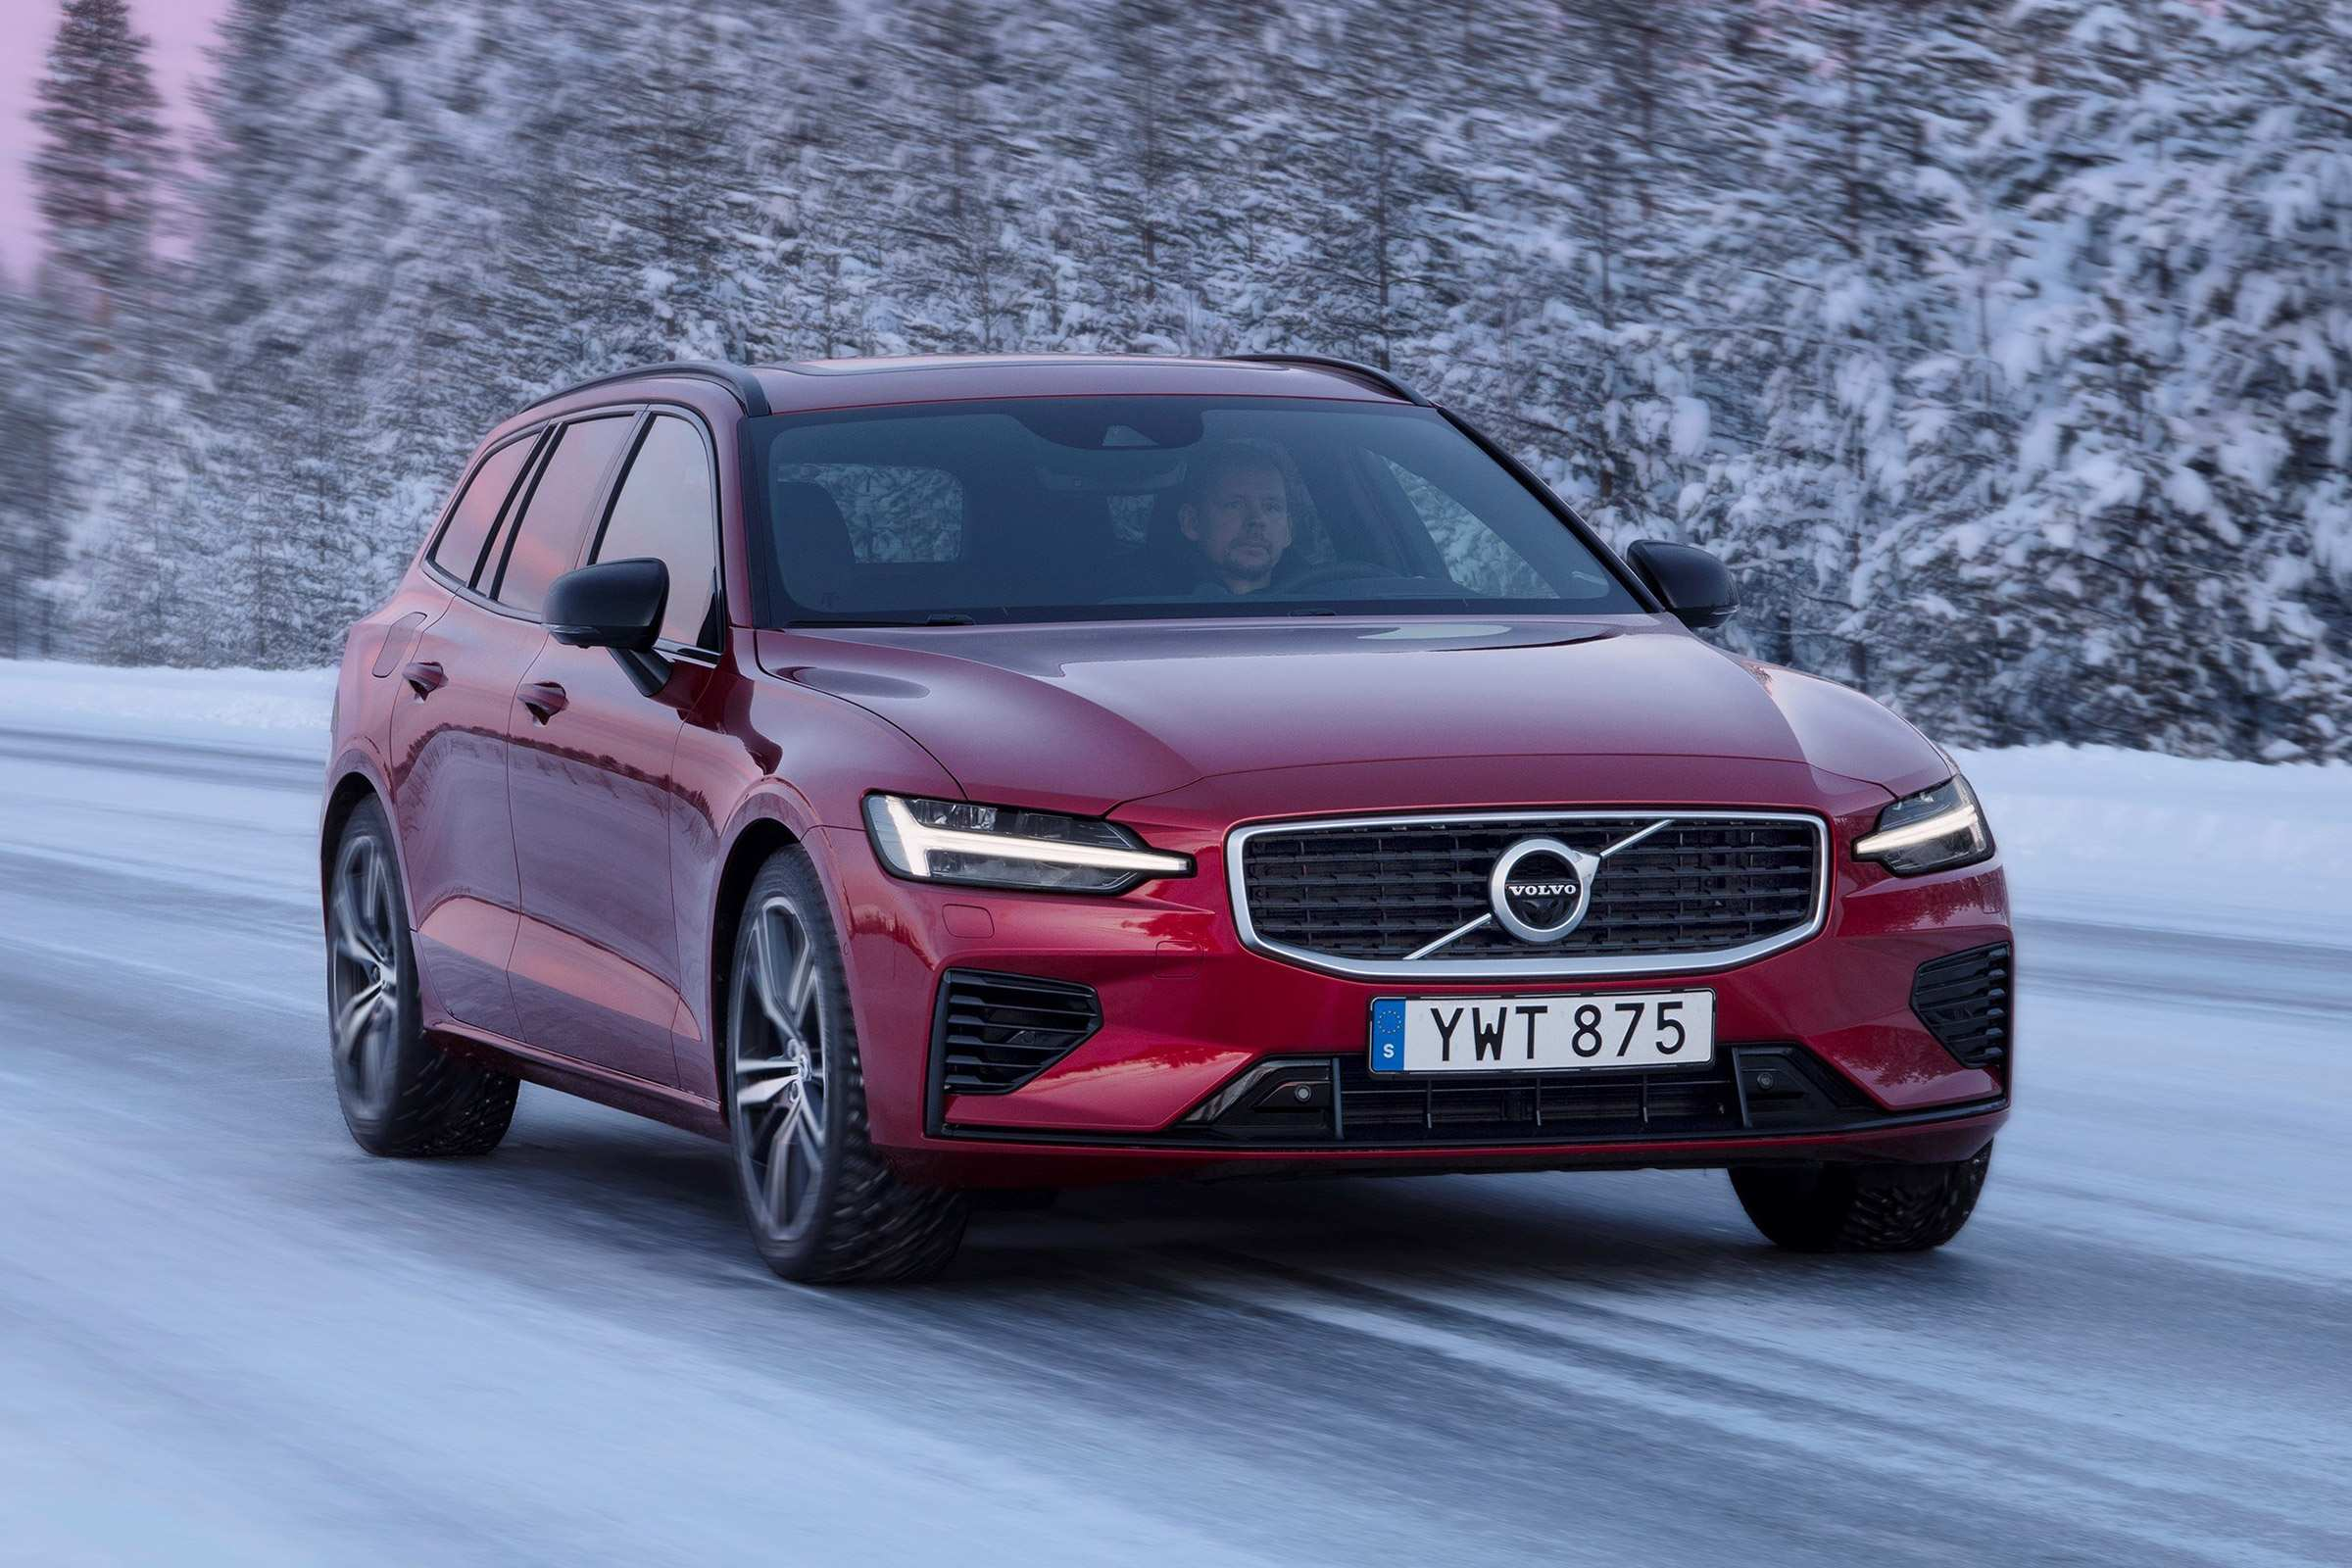 98 Concept of The Volvo Phev 2019 Performance And New Engine Pricing for The Volvo Phev 2019 Performance And New Engine